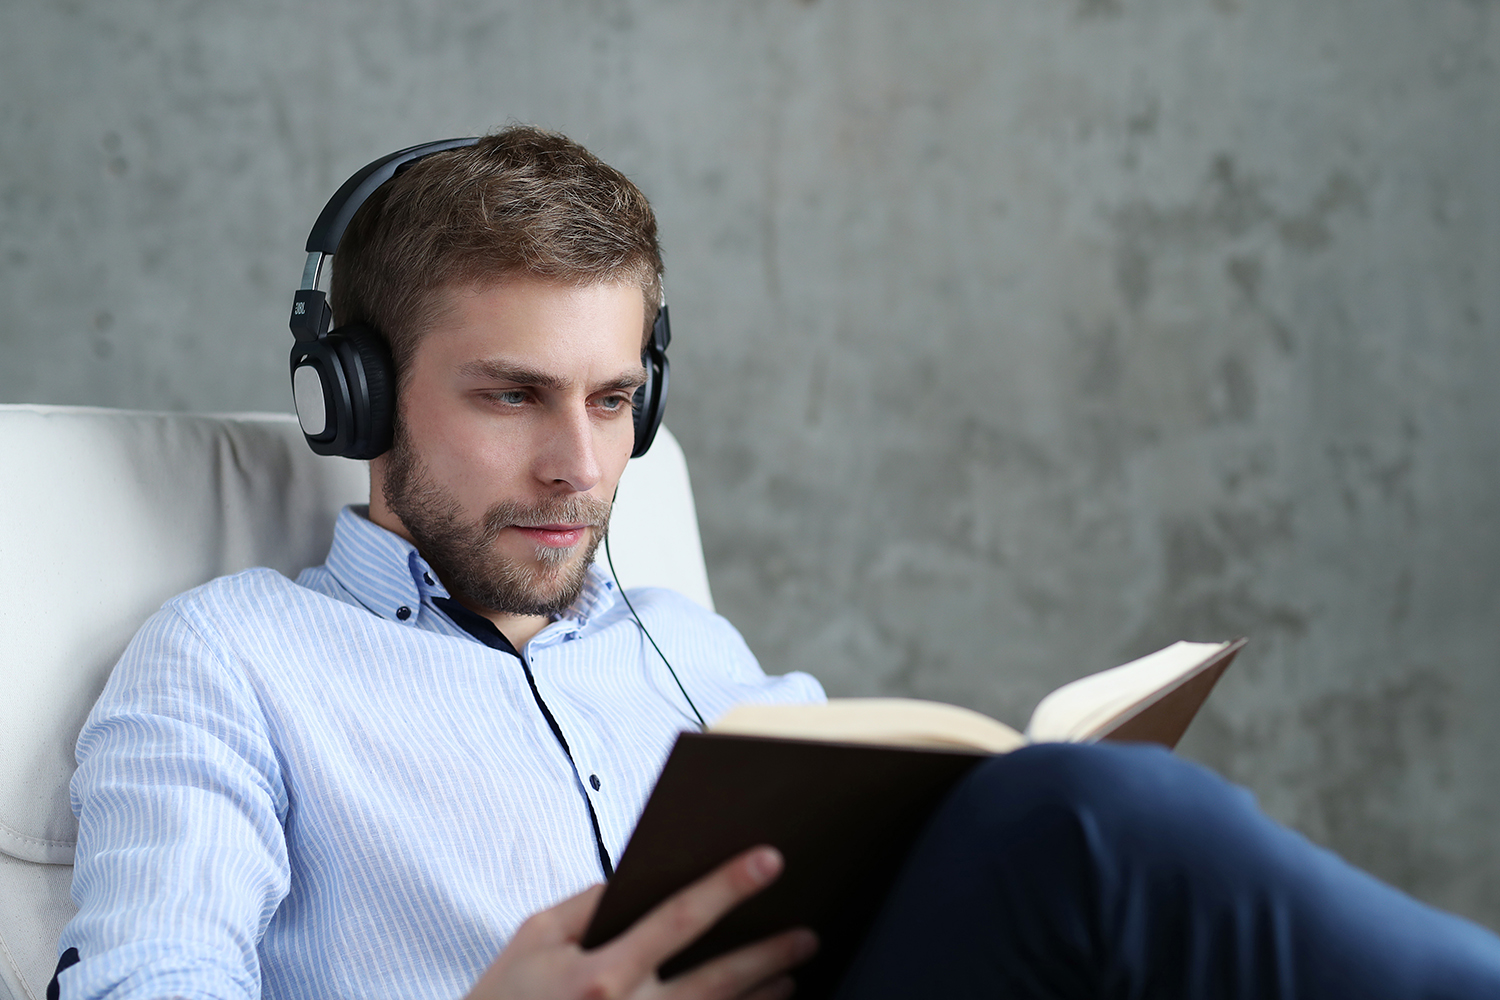 Podcast listeners are 'Loyal, affluent and educated'